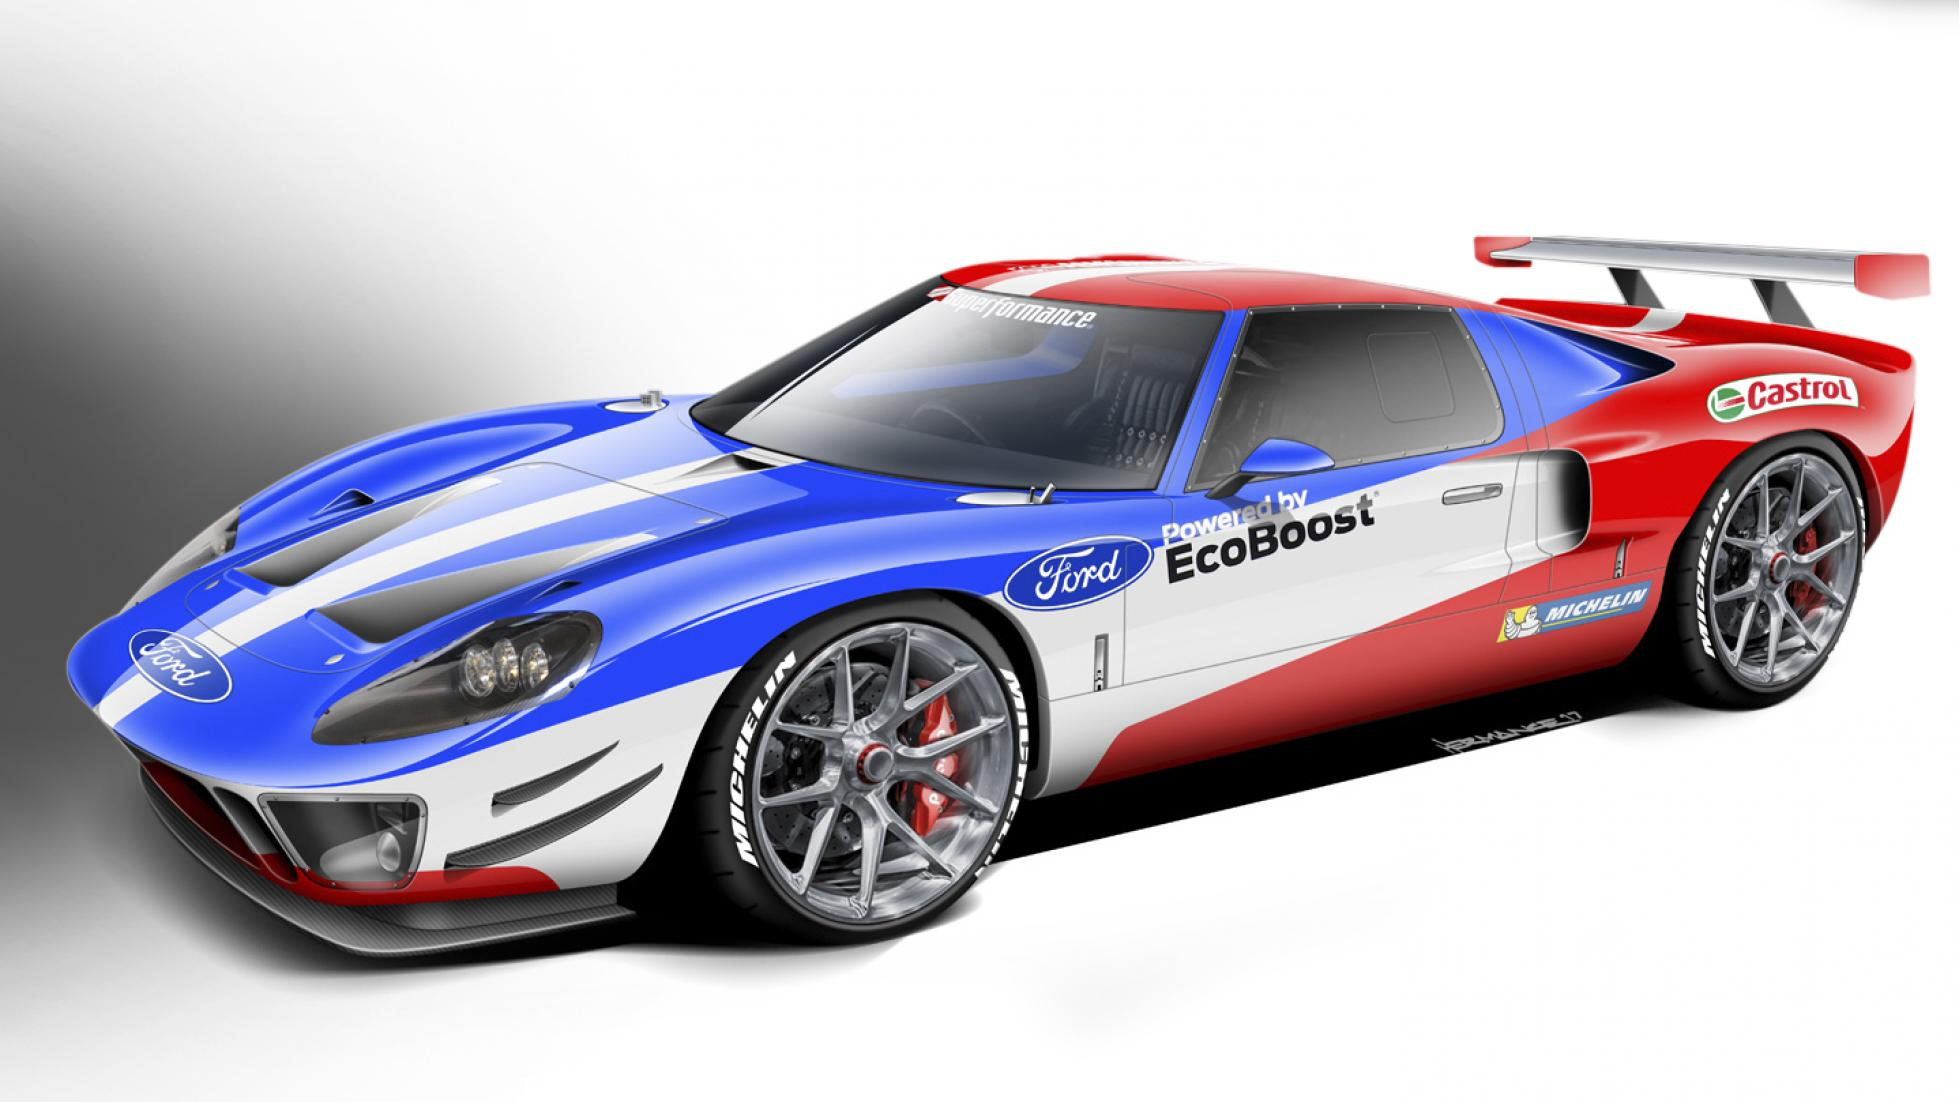 This Is A New Old Continuation One Off Ford Gt With Lots Of Modifications And A Tweaked Engine From The New Ford Gt Racer Got Your Head Wrapped Around